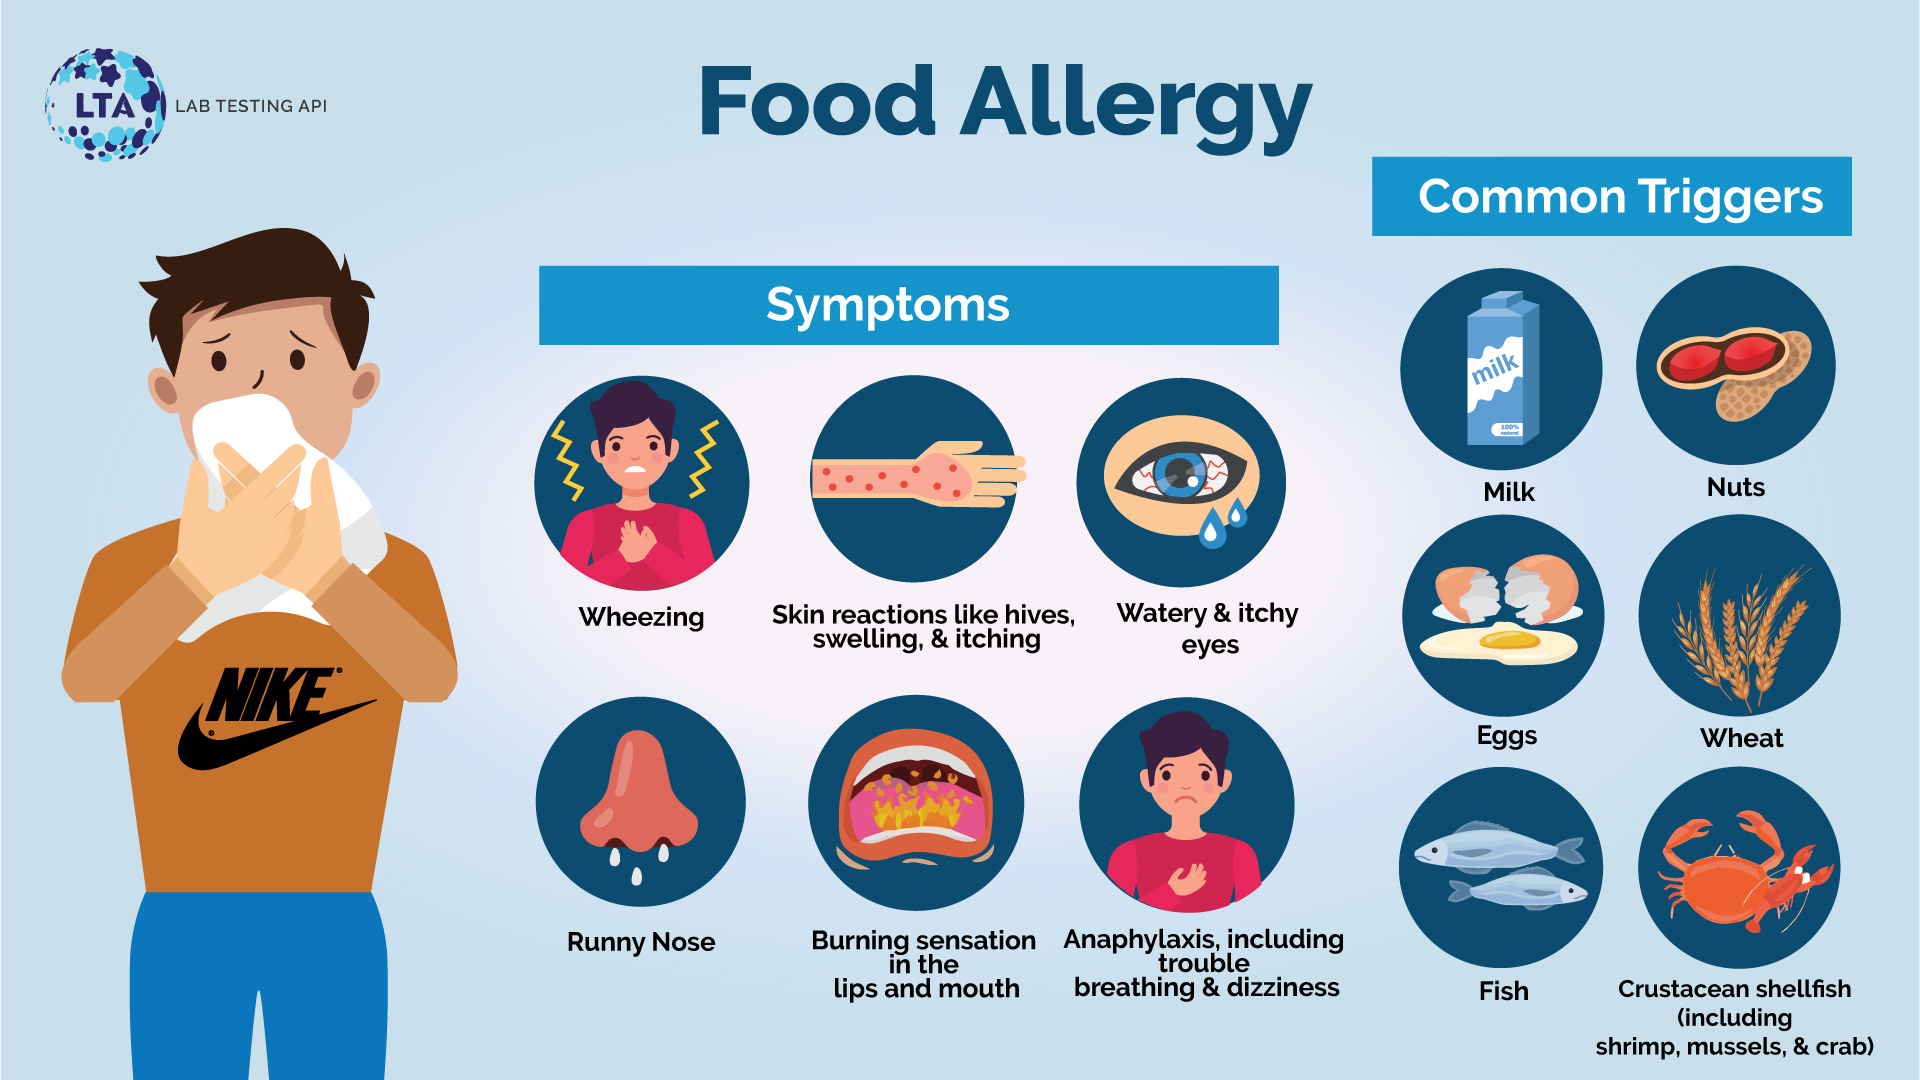 Food Allergy: Causes, Symptoms, Testing and Treatment